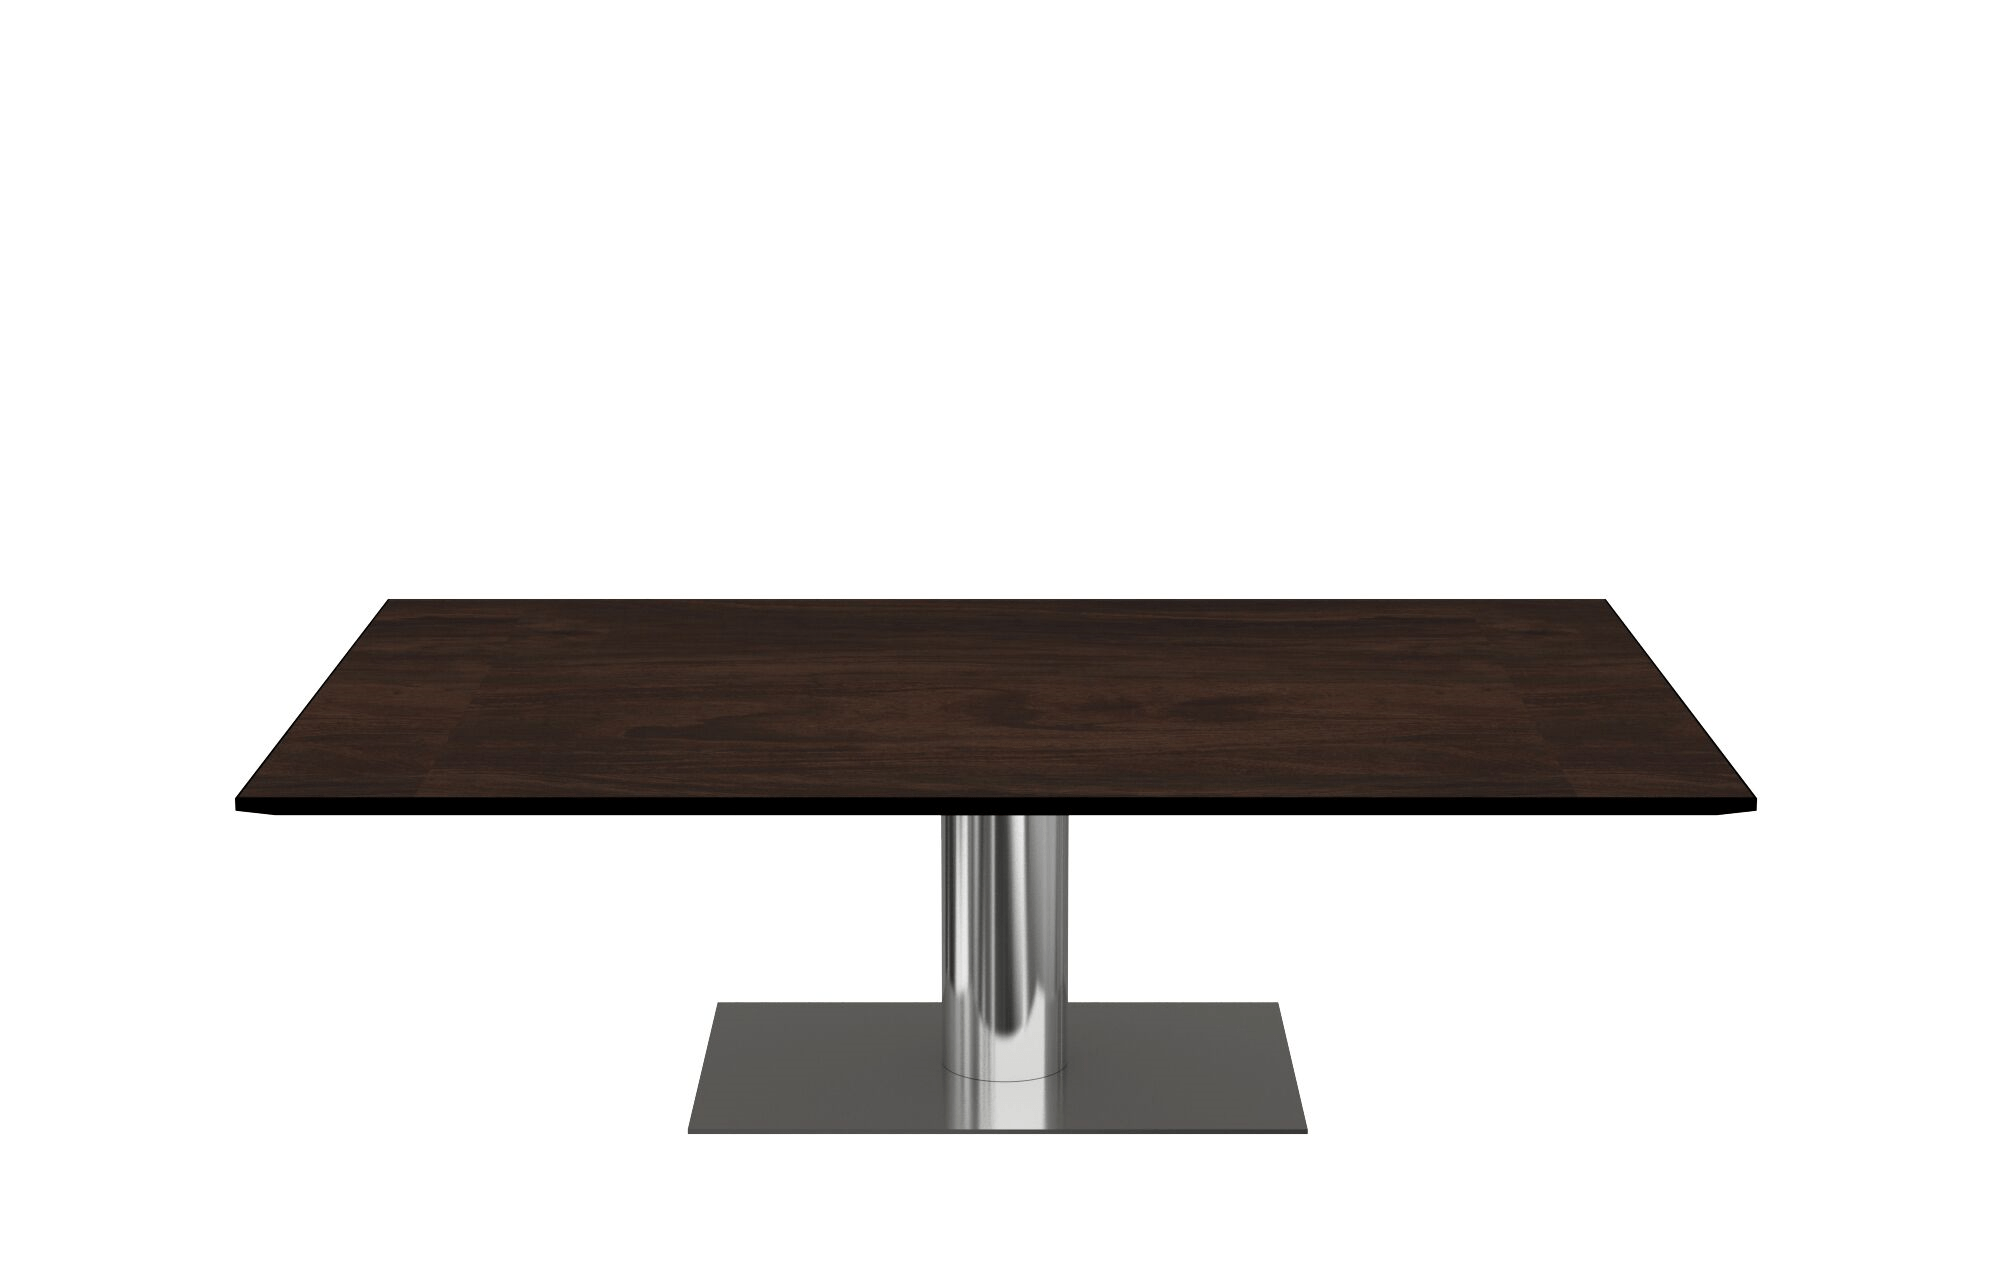 Hickory Contract Carina Tables Table 19H SQUARE TOP